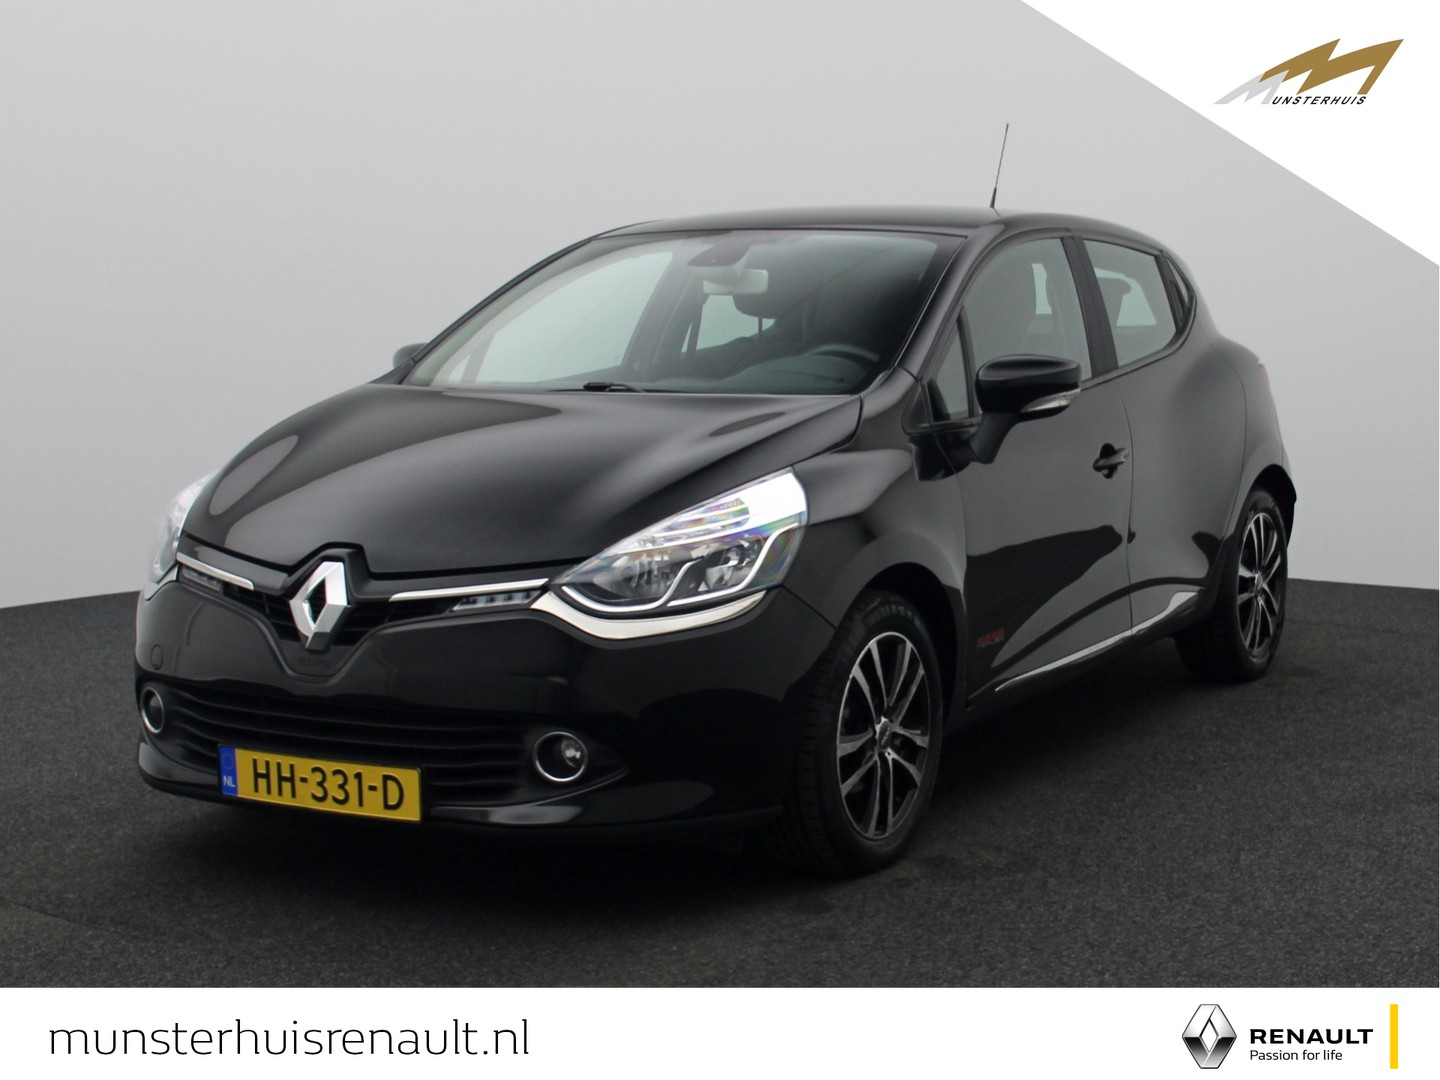 Renault Clio Energy tce 90 expression - luxe uitvoering